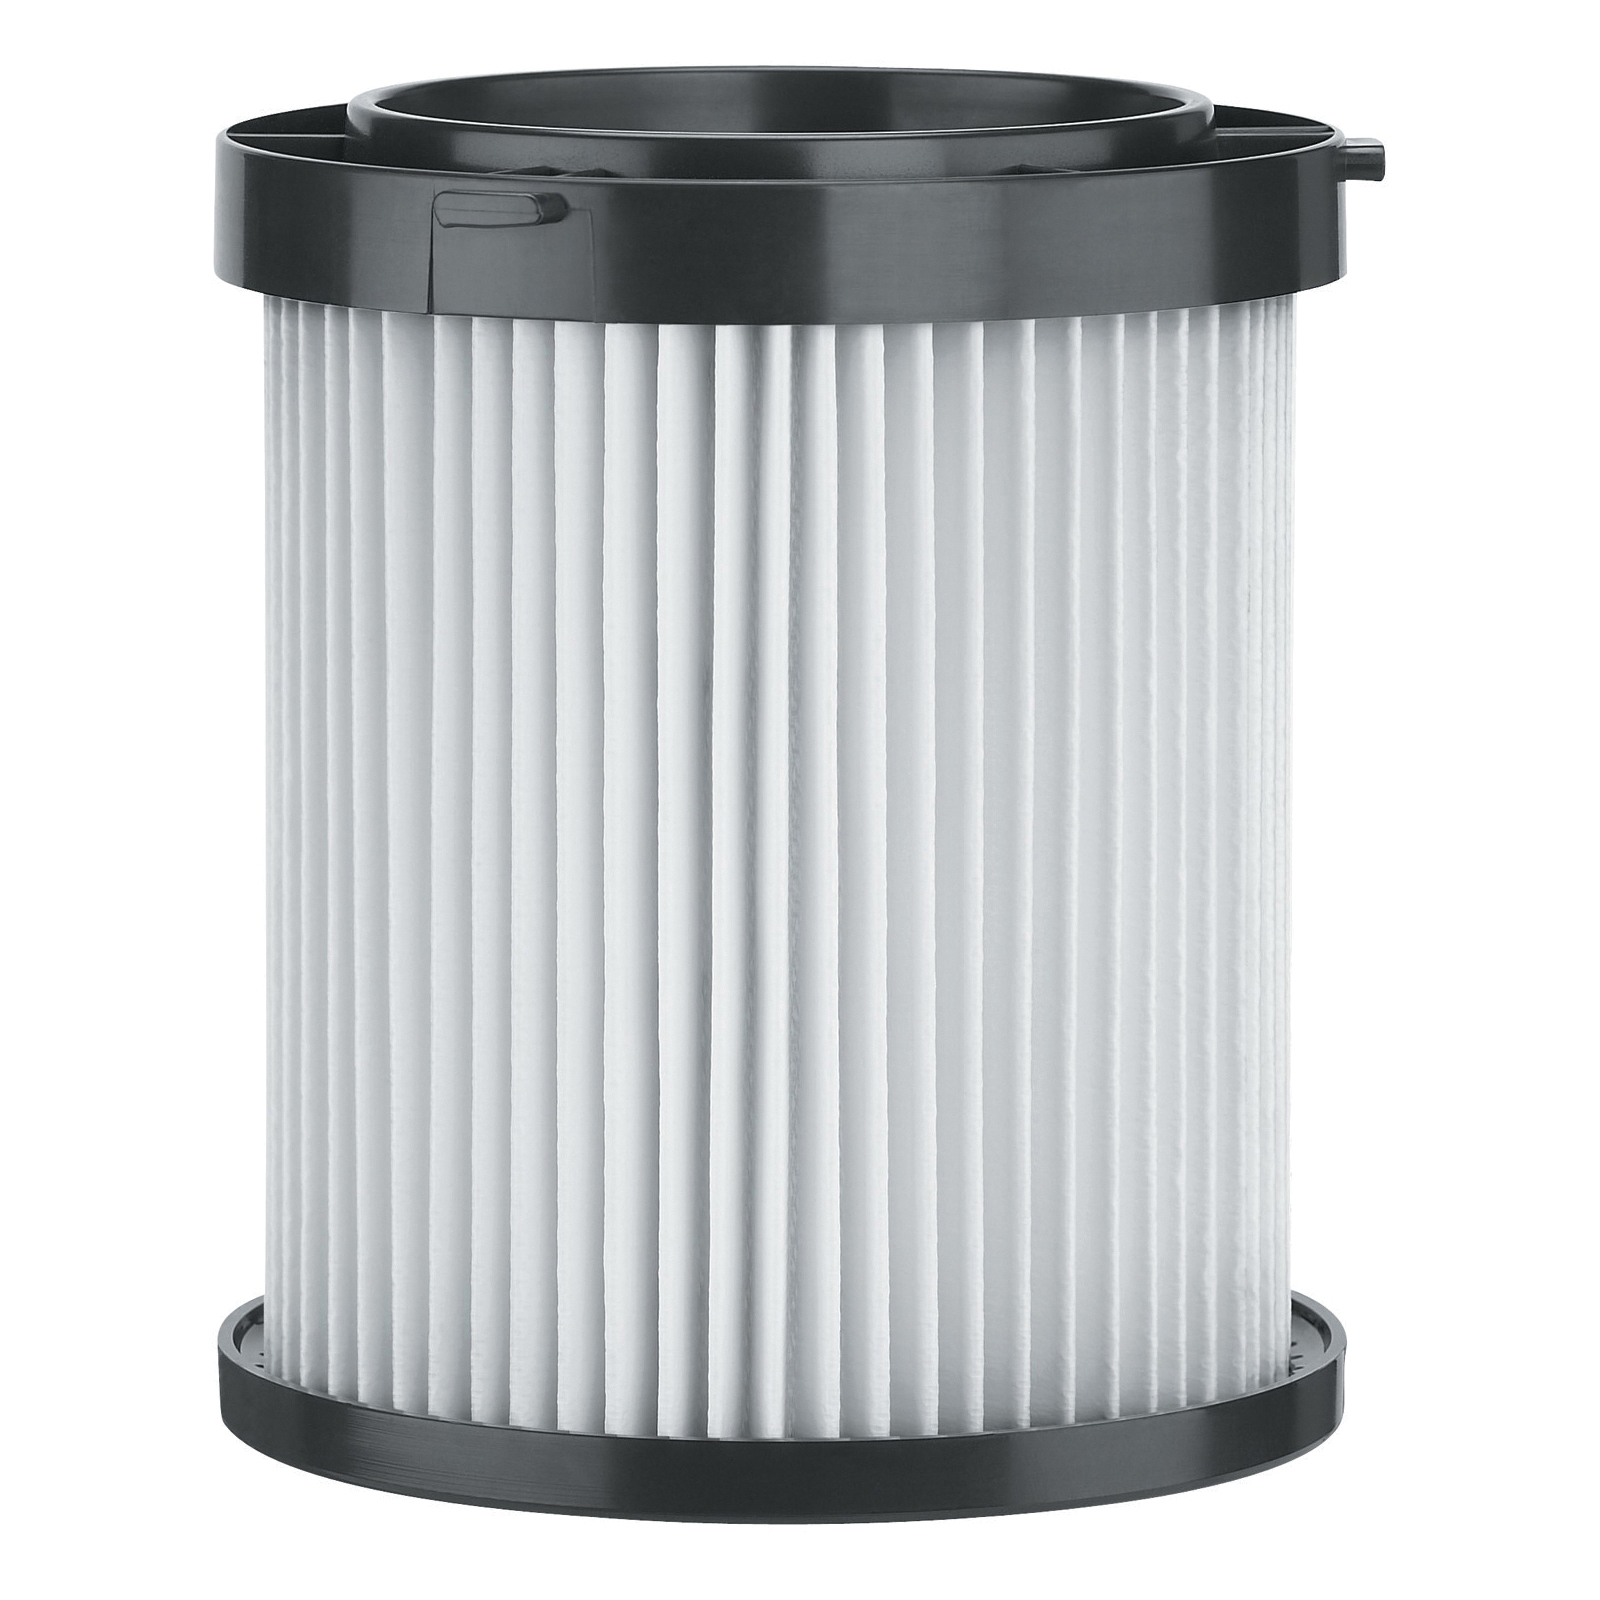 DeWALT® DC5001H Replacement HEPA Filter, Polyester, White/Black, For Use With DC500 Wet/Dry Vacuum